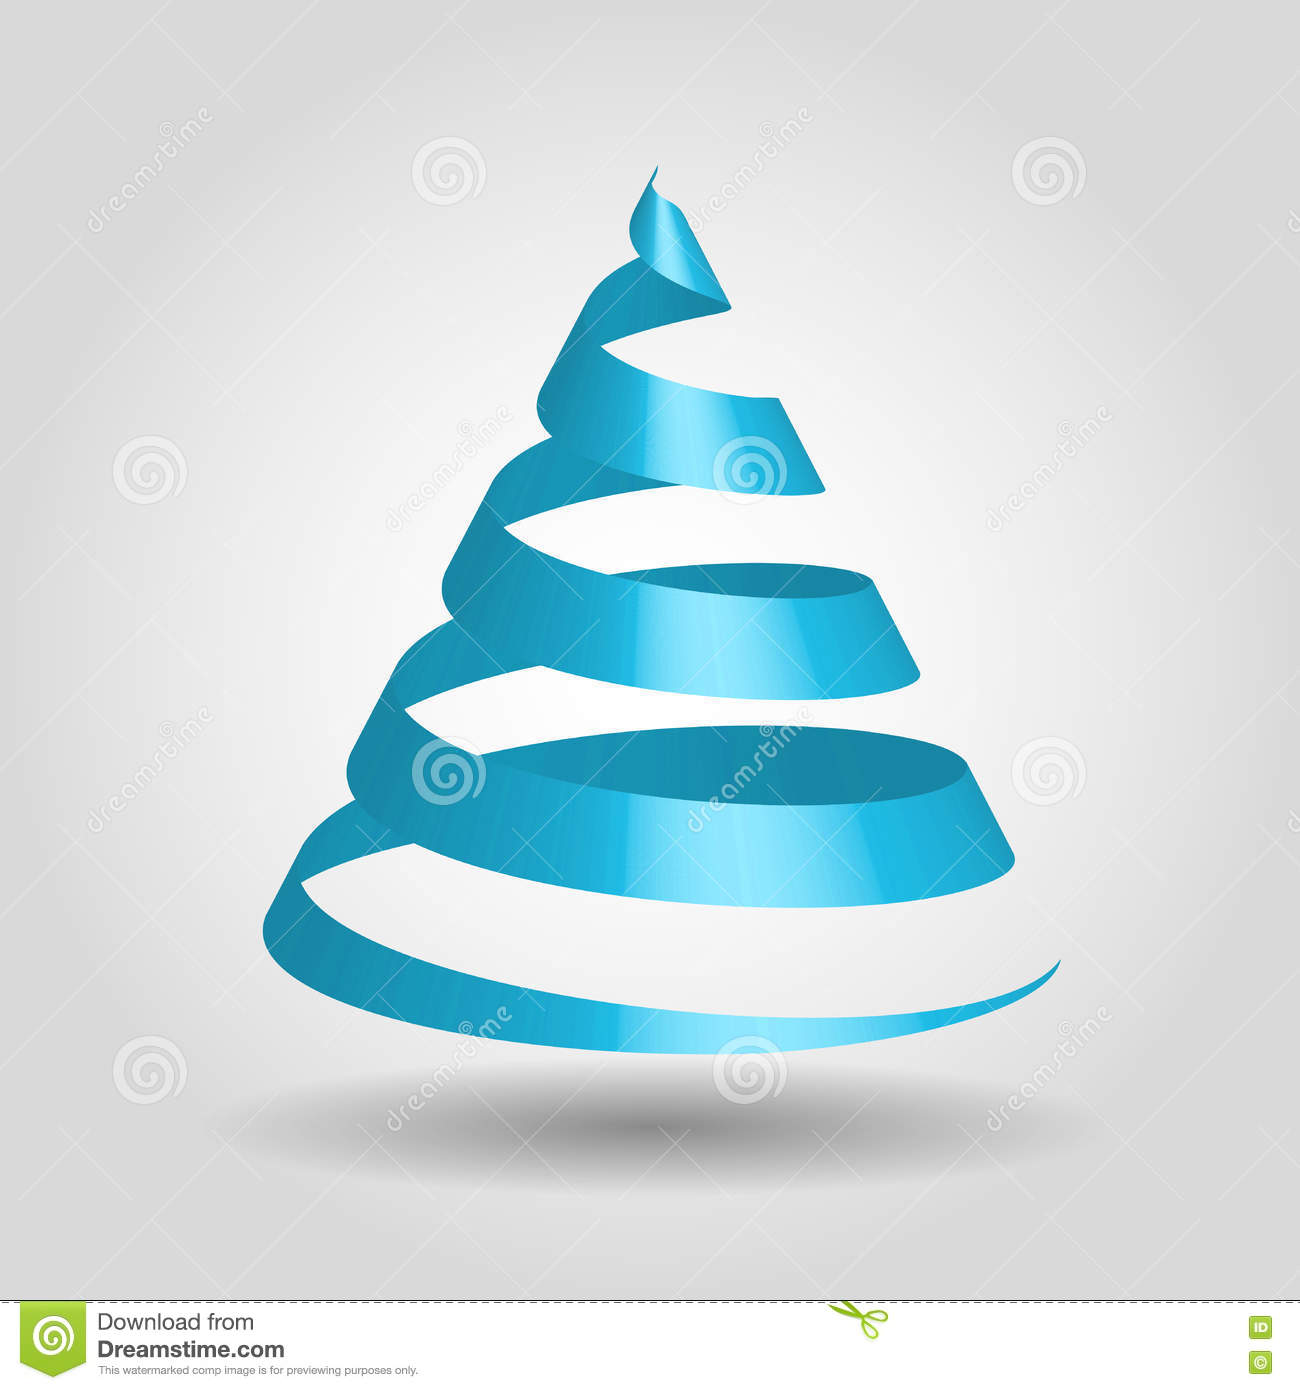 Blue Glossy Ribbon In A Shape Of Christmas Tree Stock Vector Illustration Of Curve Ribbon 81079067